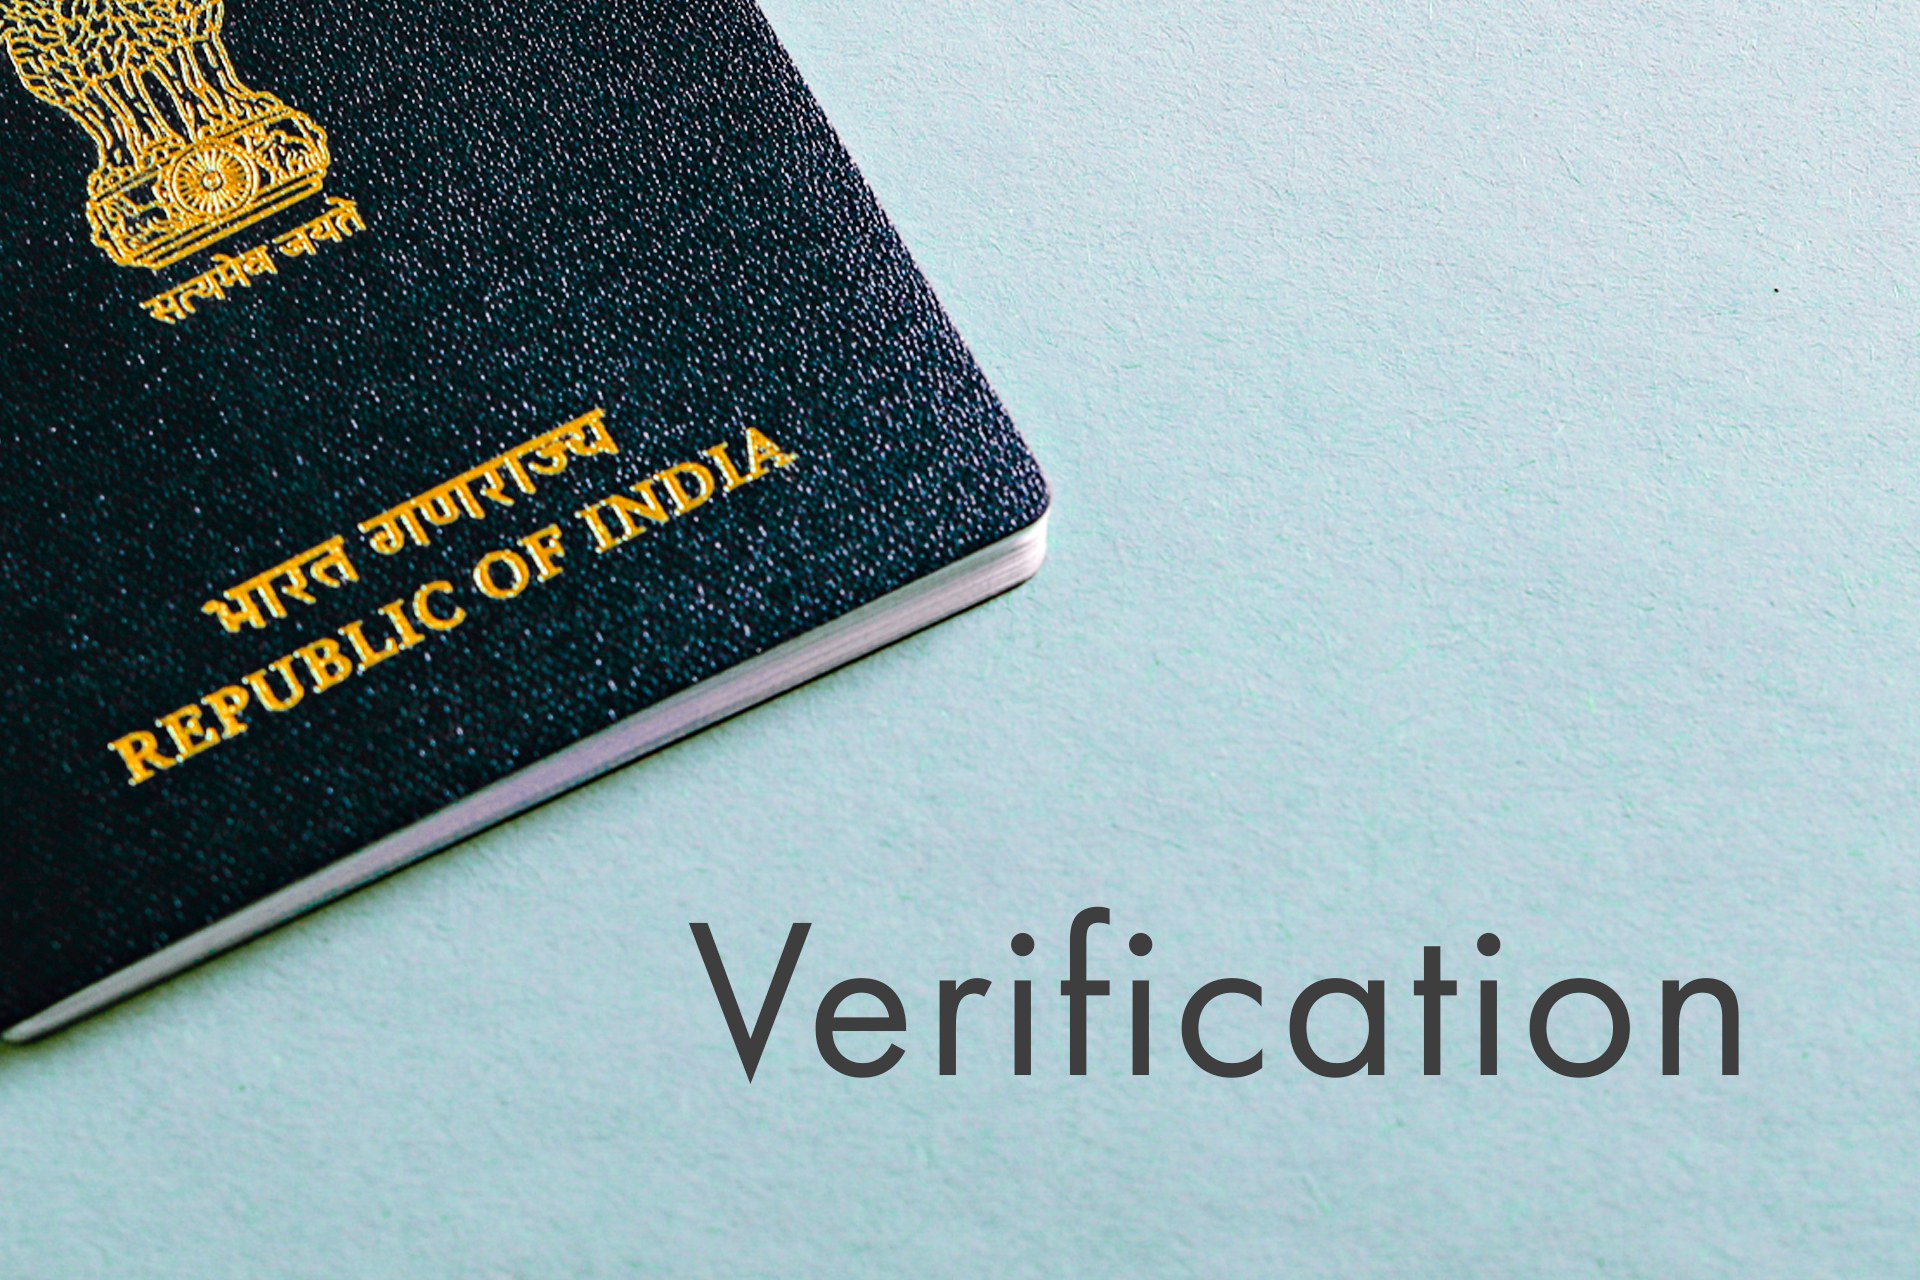 To verify your account you need to upload scans of your real documents.